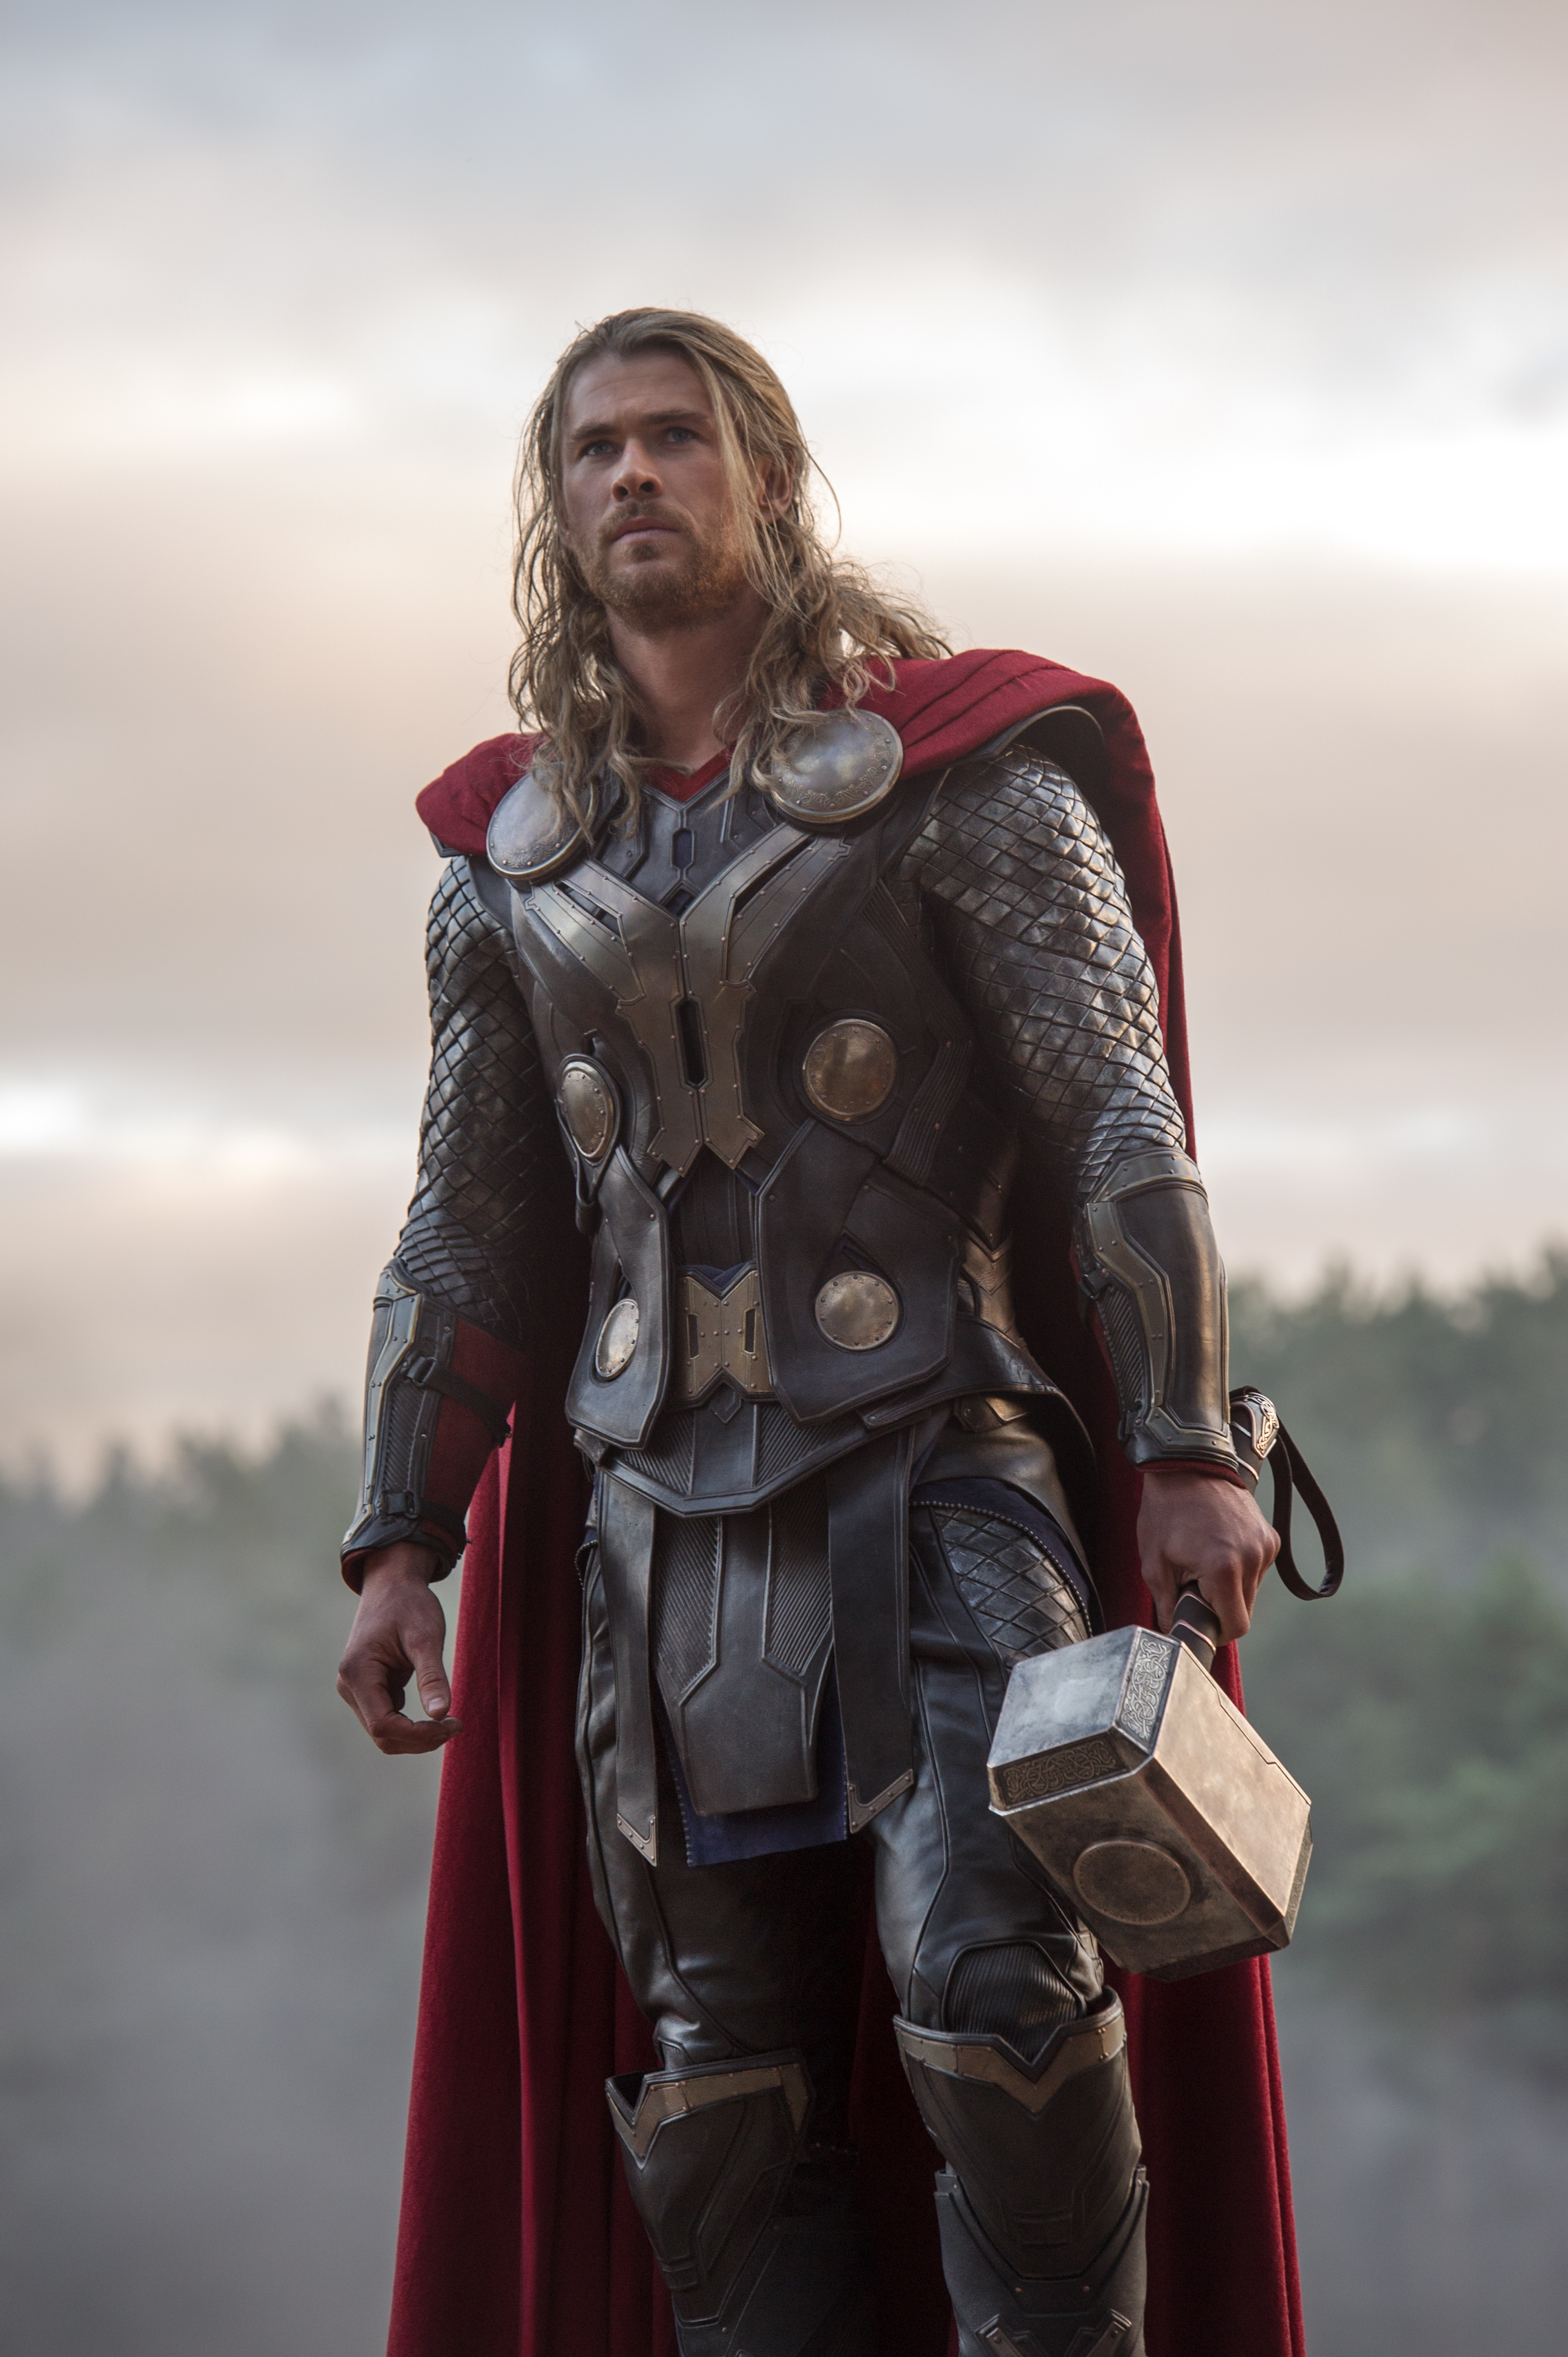 uk filming locations take centre stage for thor: the dark world